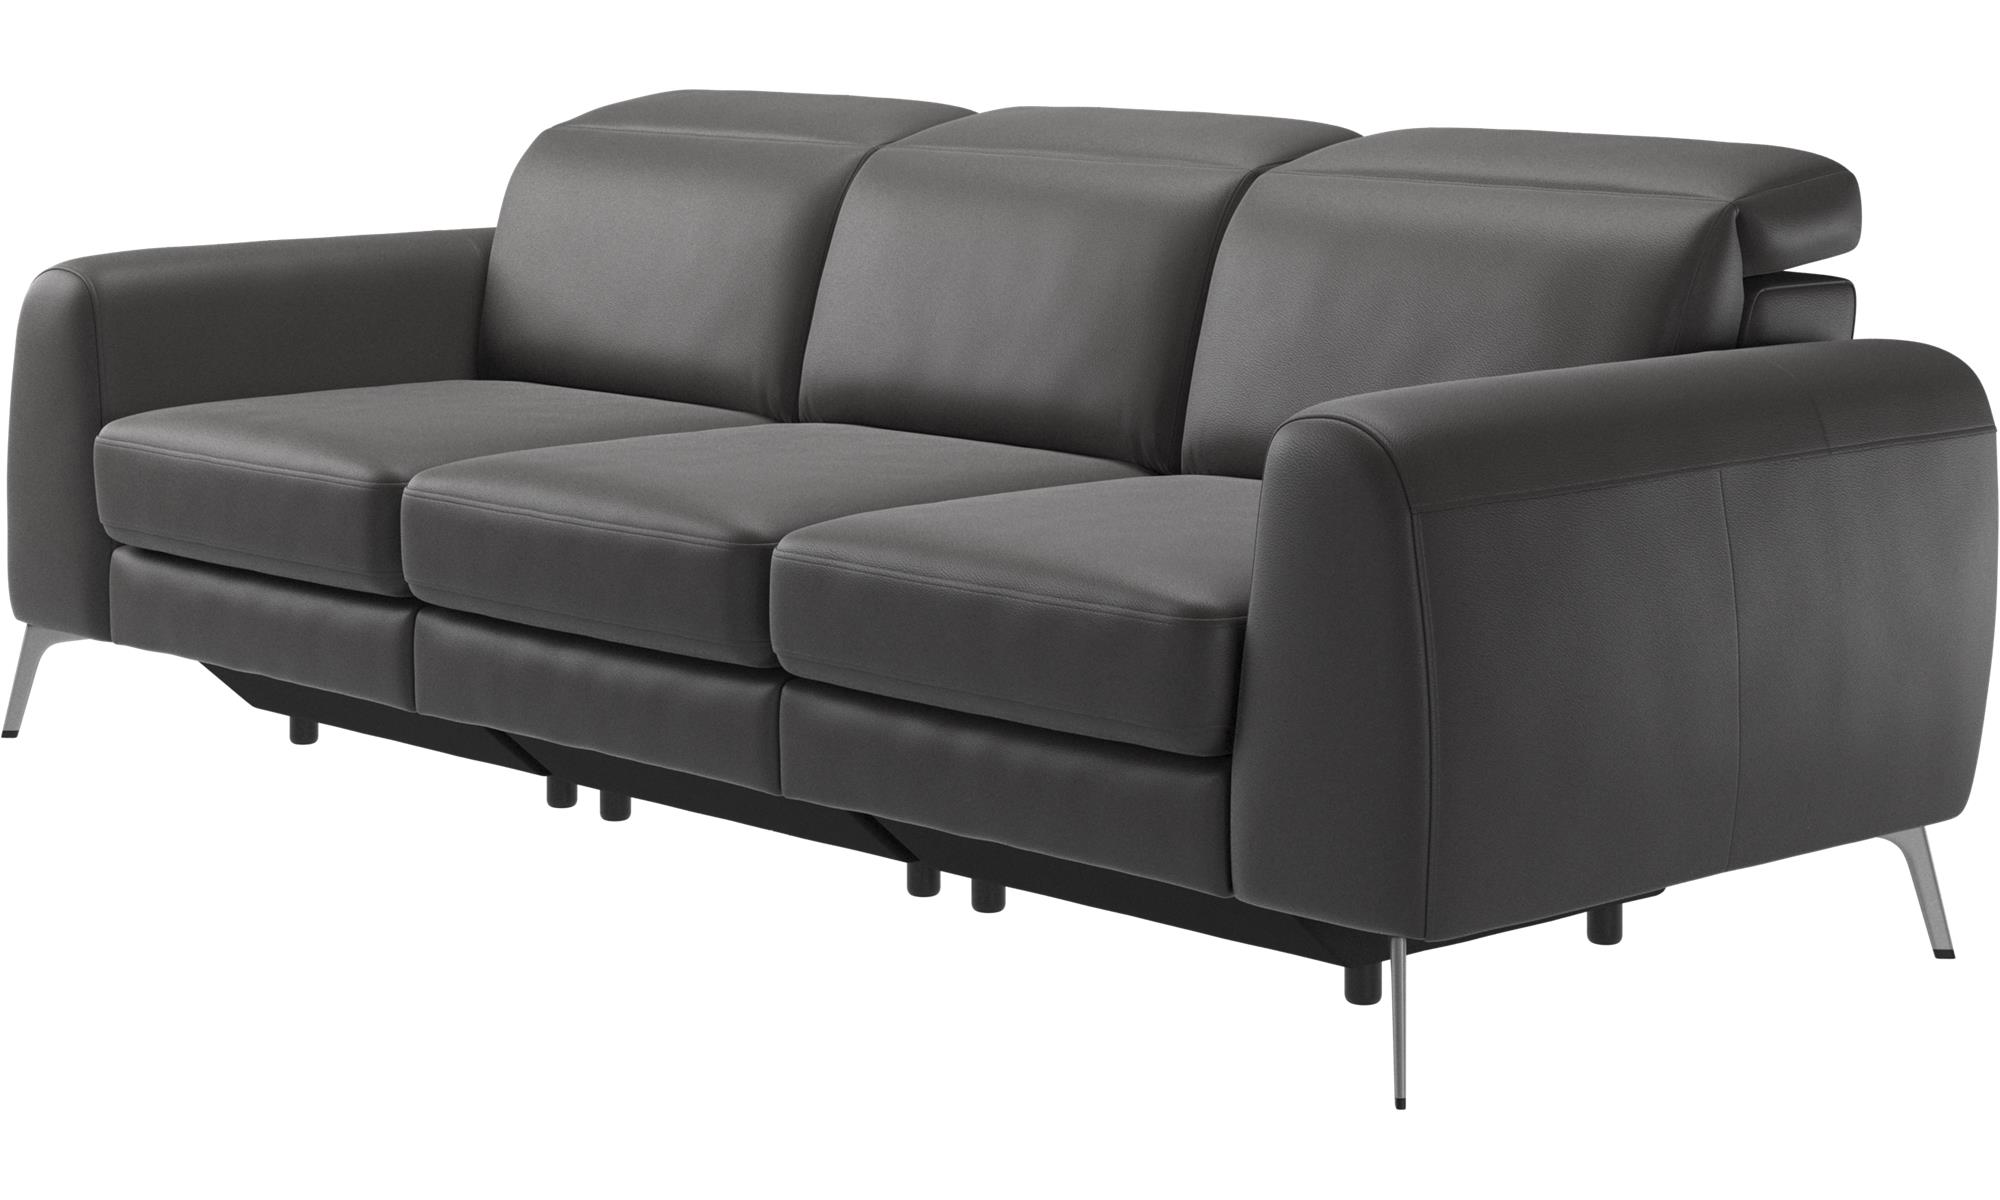 3 seater sofas madison sofa with adjustable headrest. Black Bedroom Furniture Sets. Home Design Ideas